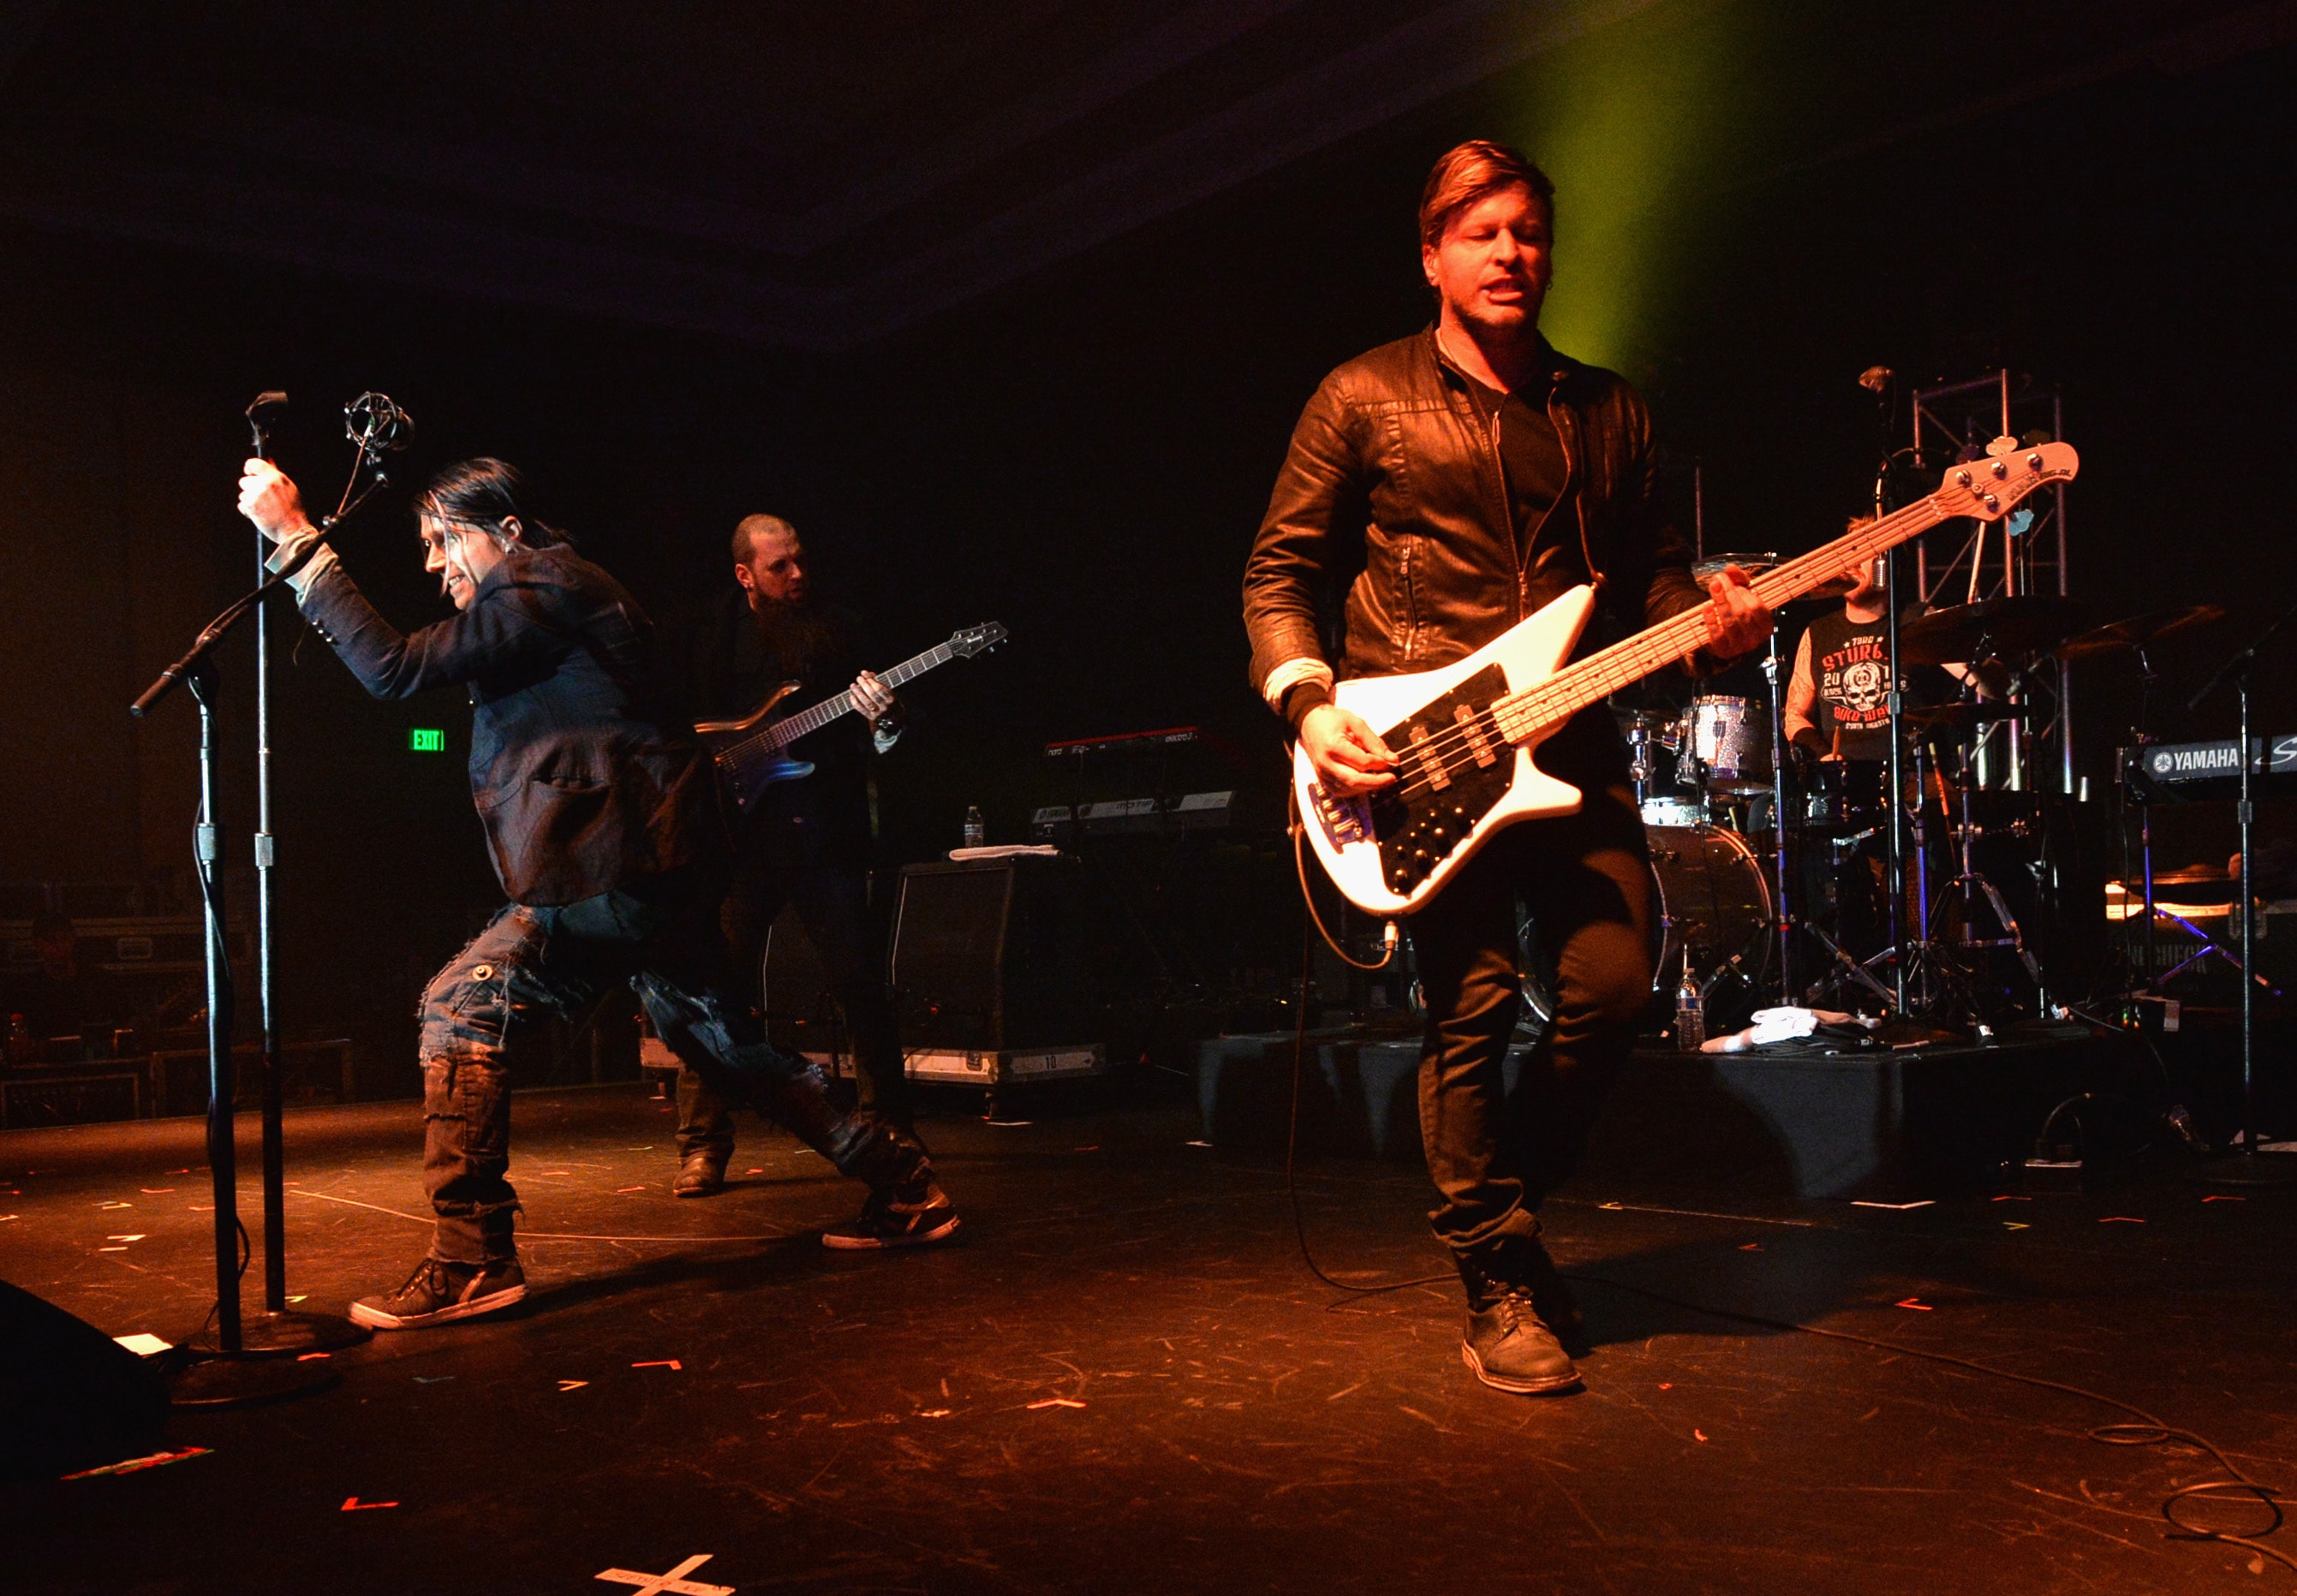 NASHVILLE, TN - OCTOBER 21: Matt Walst, Barry Stock, Neil Sanderson and Brad Walst of Three Days Grace perform at the Agency Group Party during the IEBA 2013 Conference - Day 2 at The Omni Nashville Hotel on October 21, 2013 in Nashville, Tennessee.